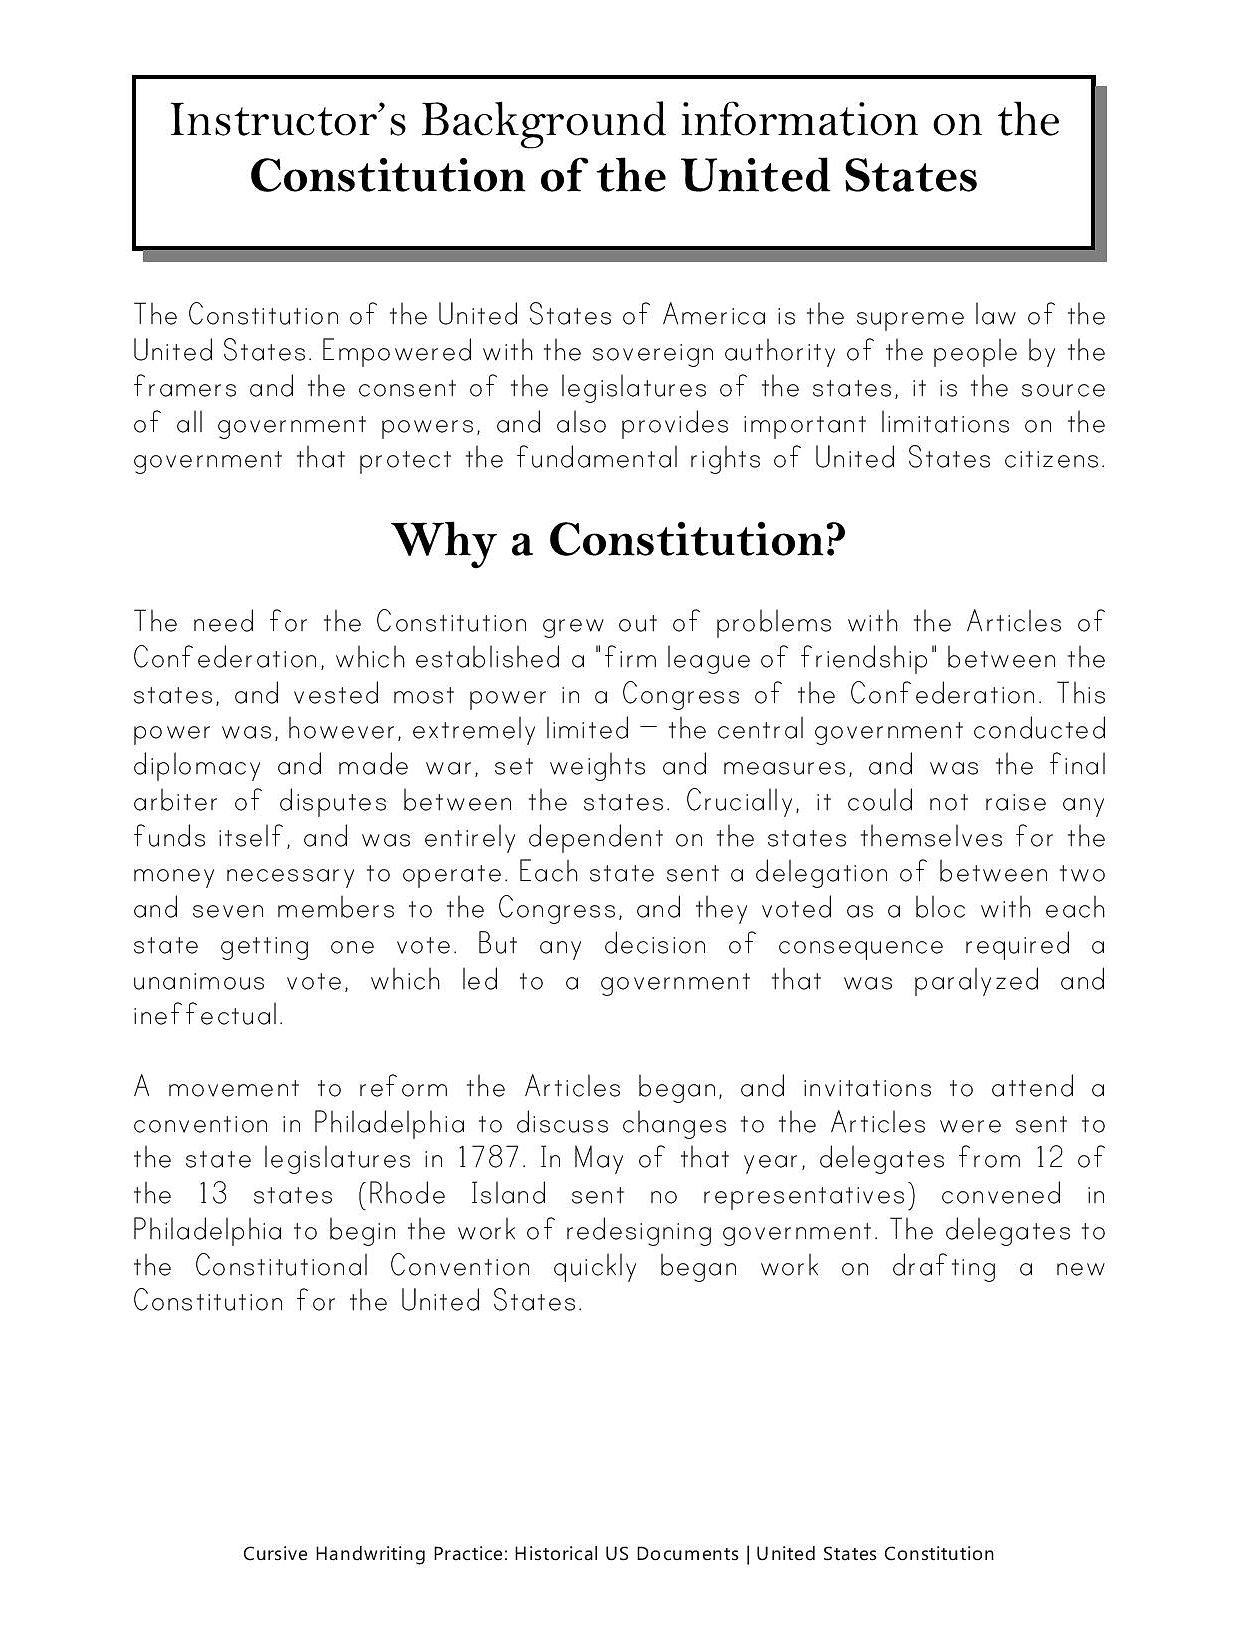 worksheet The Us Constitution Worksheet 100 the us constitution worksheet solve then decode handwritingworkbooks cursive handwriting copybook u s constitution